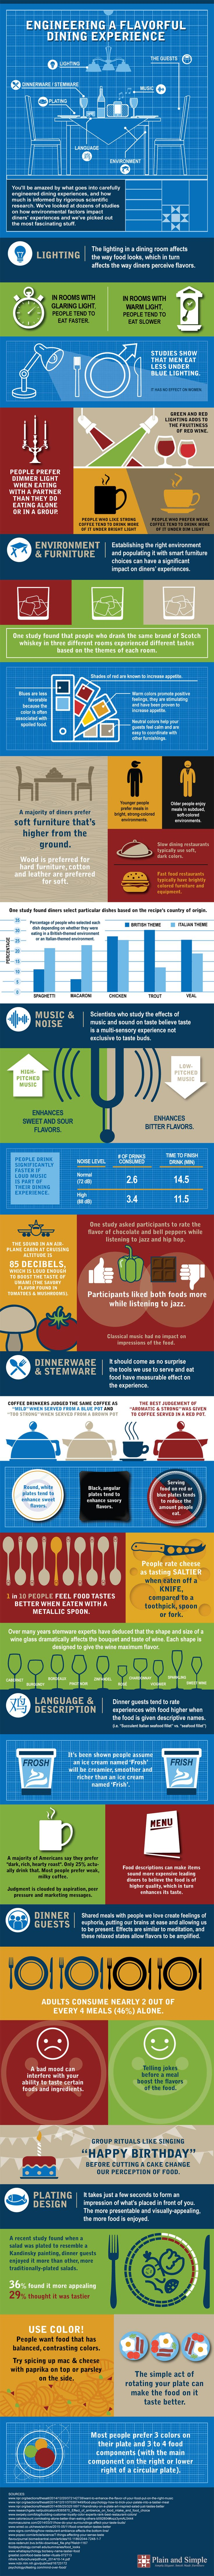 Engineering a Flavorful Dining Experience Infographic. Topic: restaurant, food service, interior design.